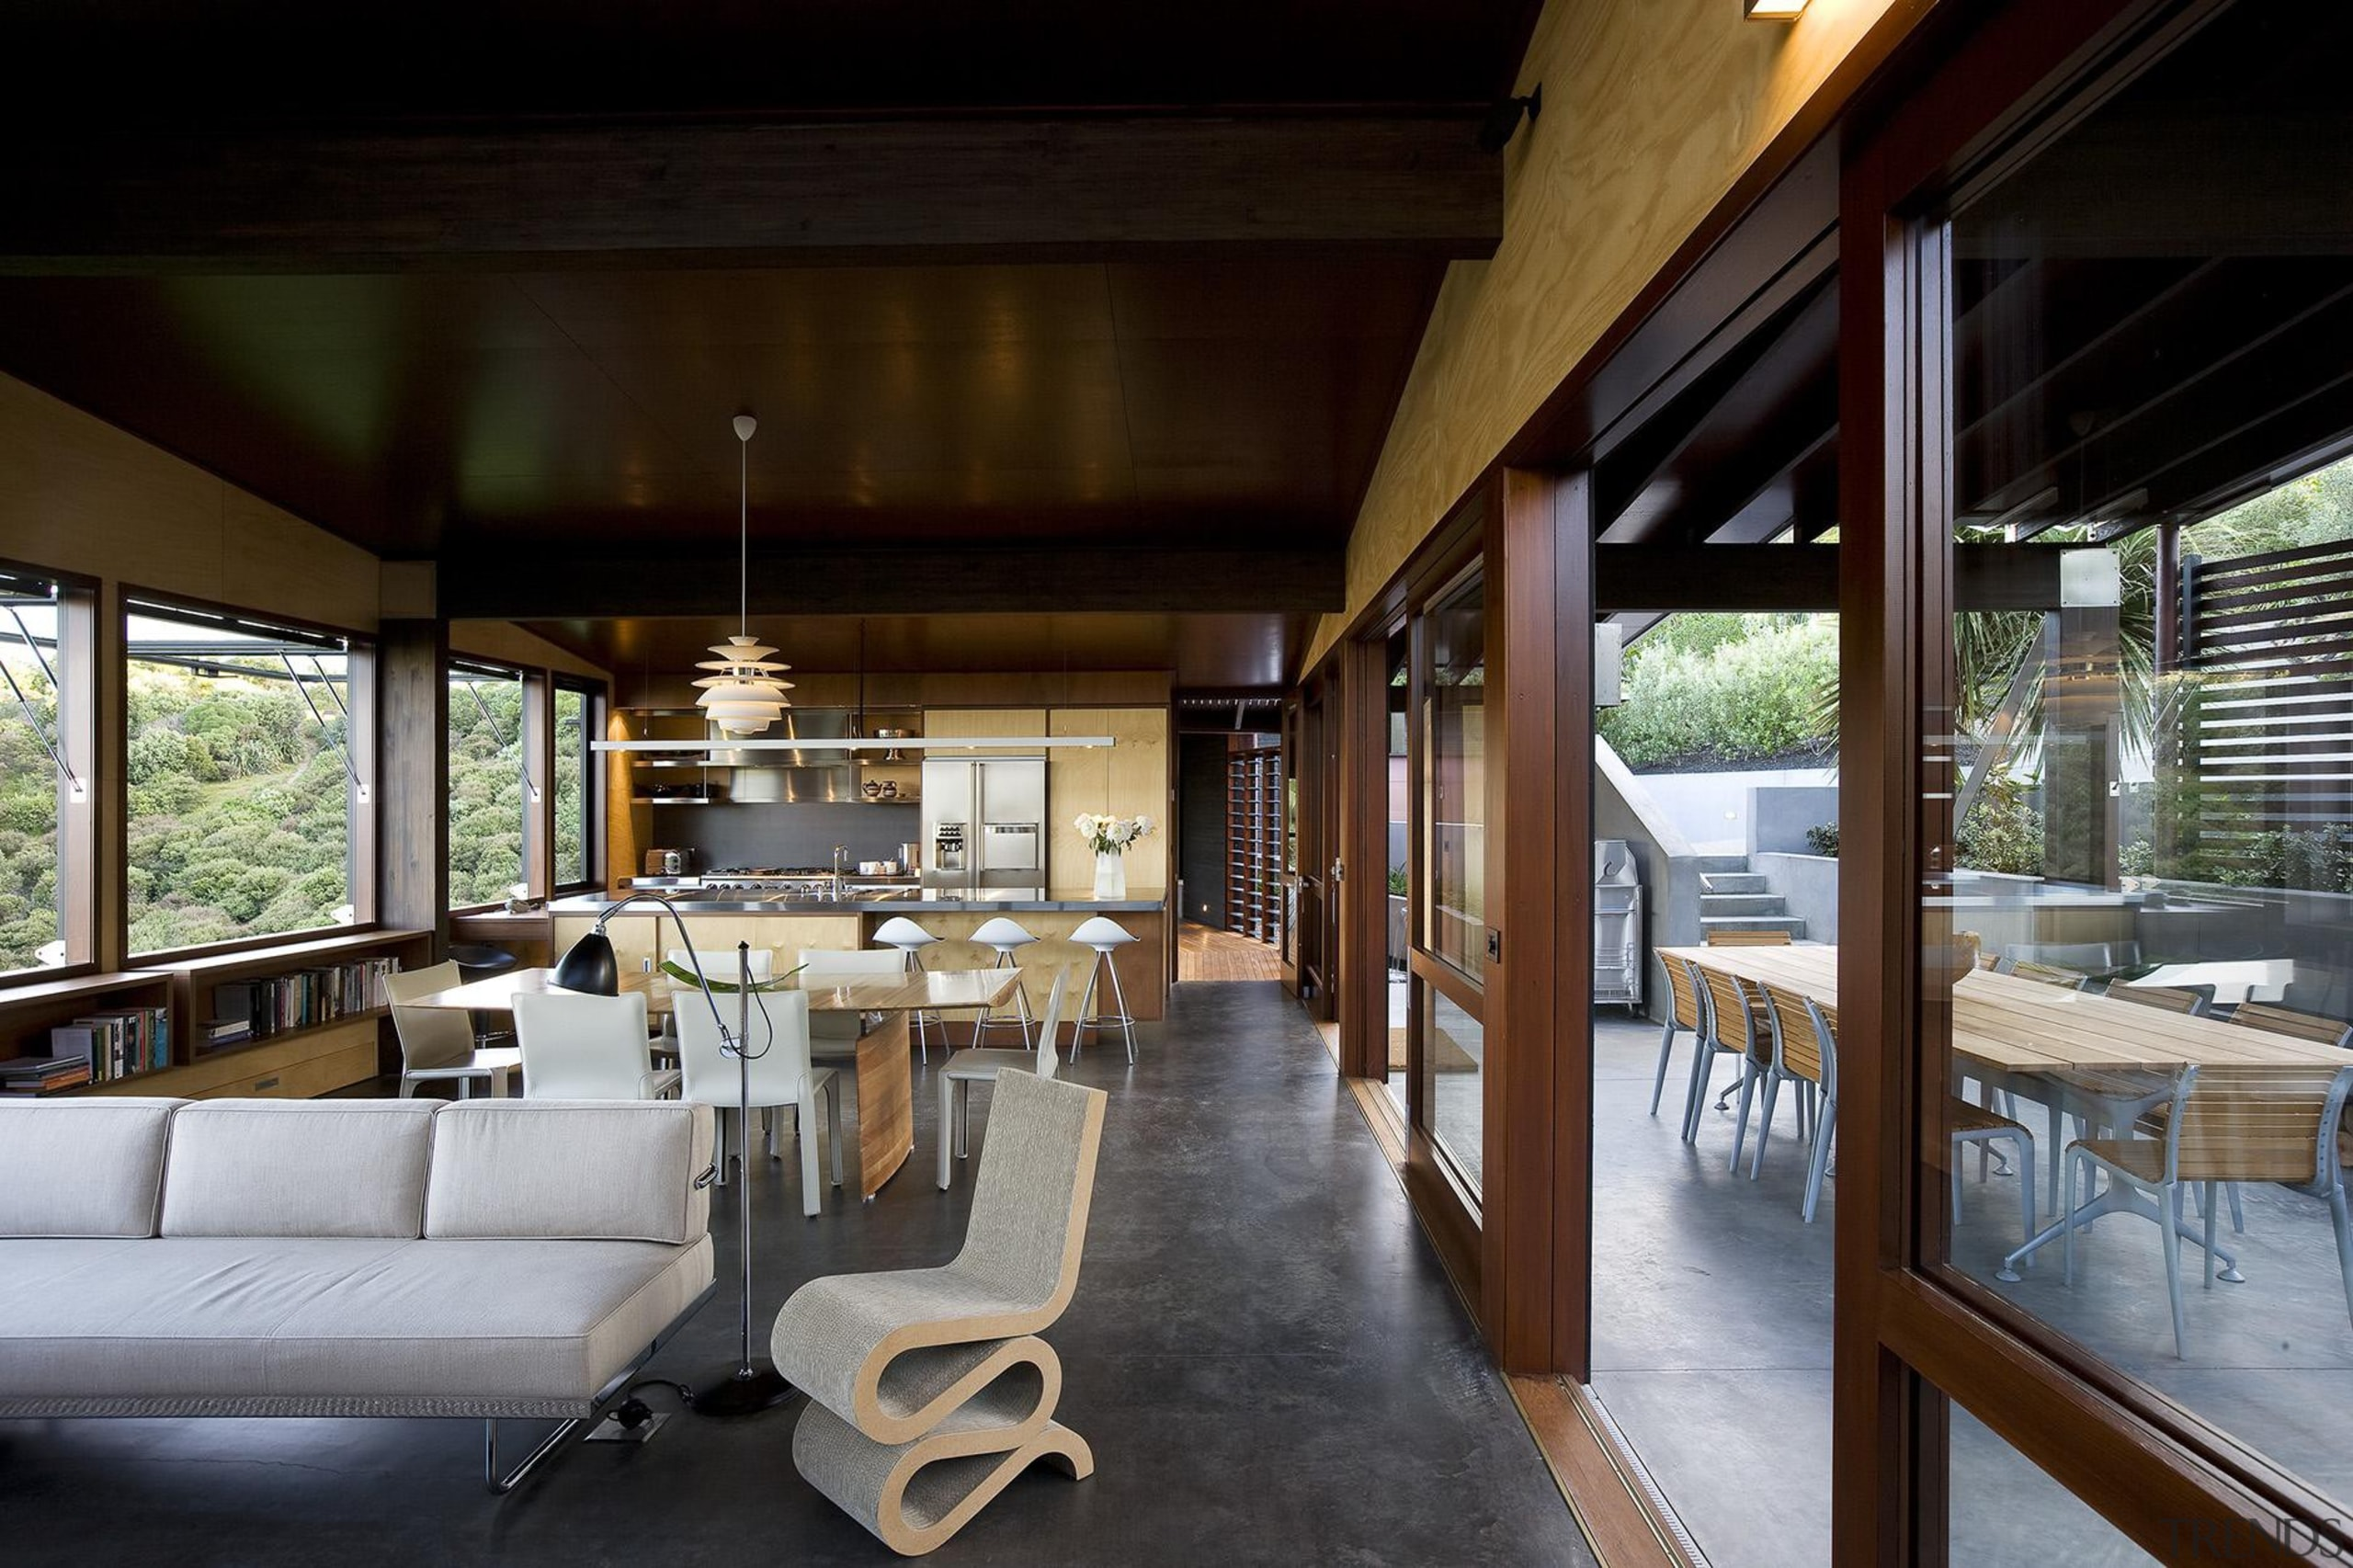 Waiheke Island, Auckland - Owhanake Bay - architecture architecture, house, interior design, real estate, restaurant, table, black, gray